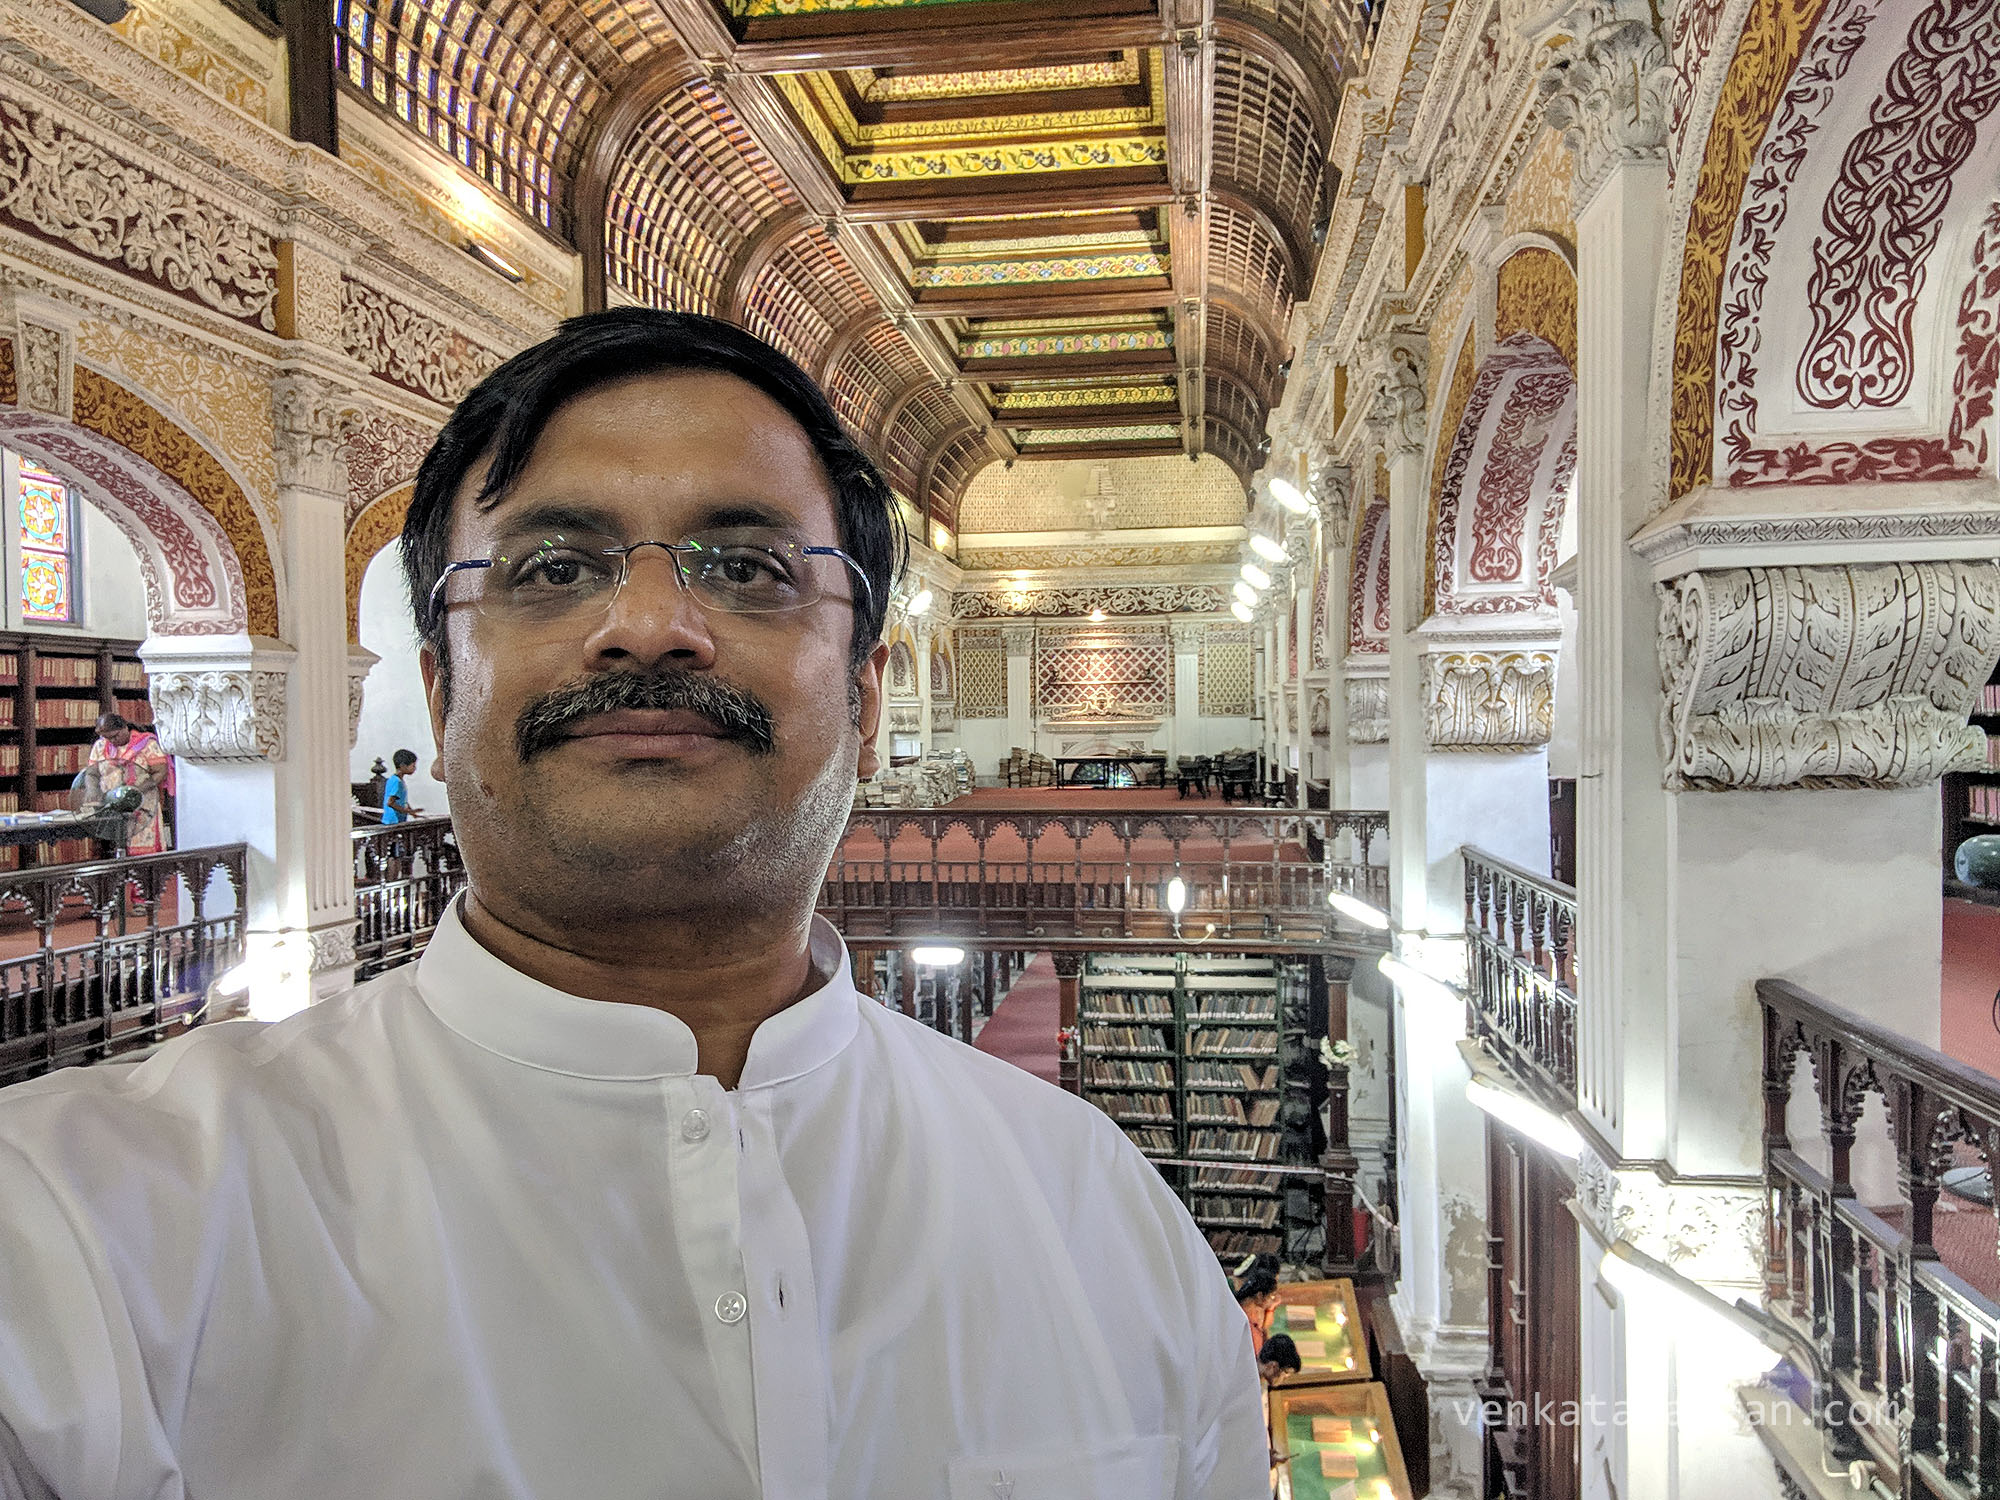 T.N.C.Venkatarangan (yours truly) seen inside the old building of Connemara Public Library, Egmore, Chennai, India - 27th April 2019